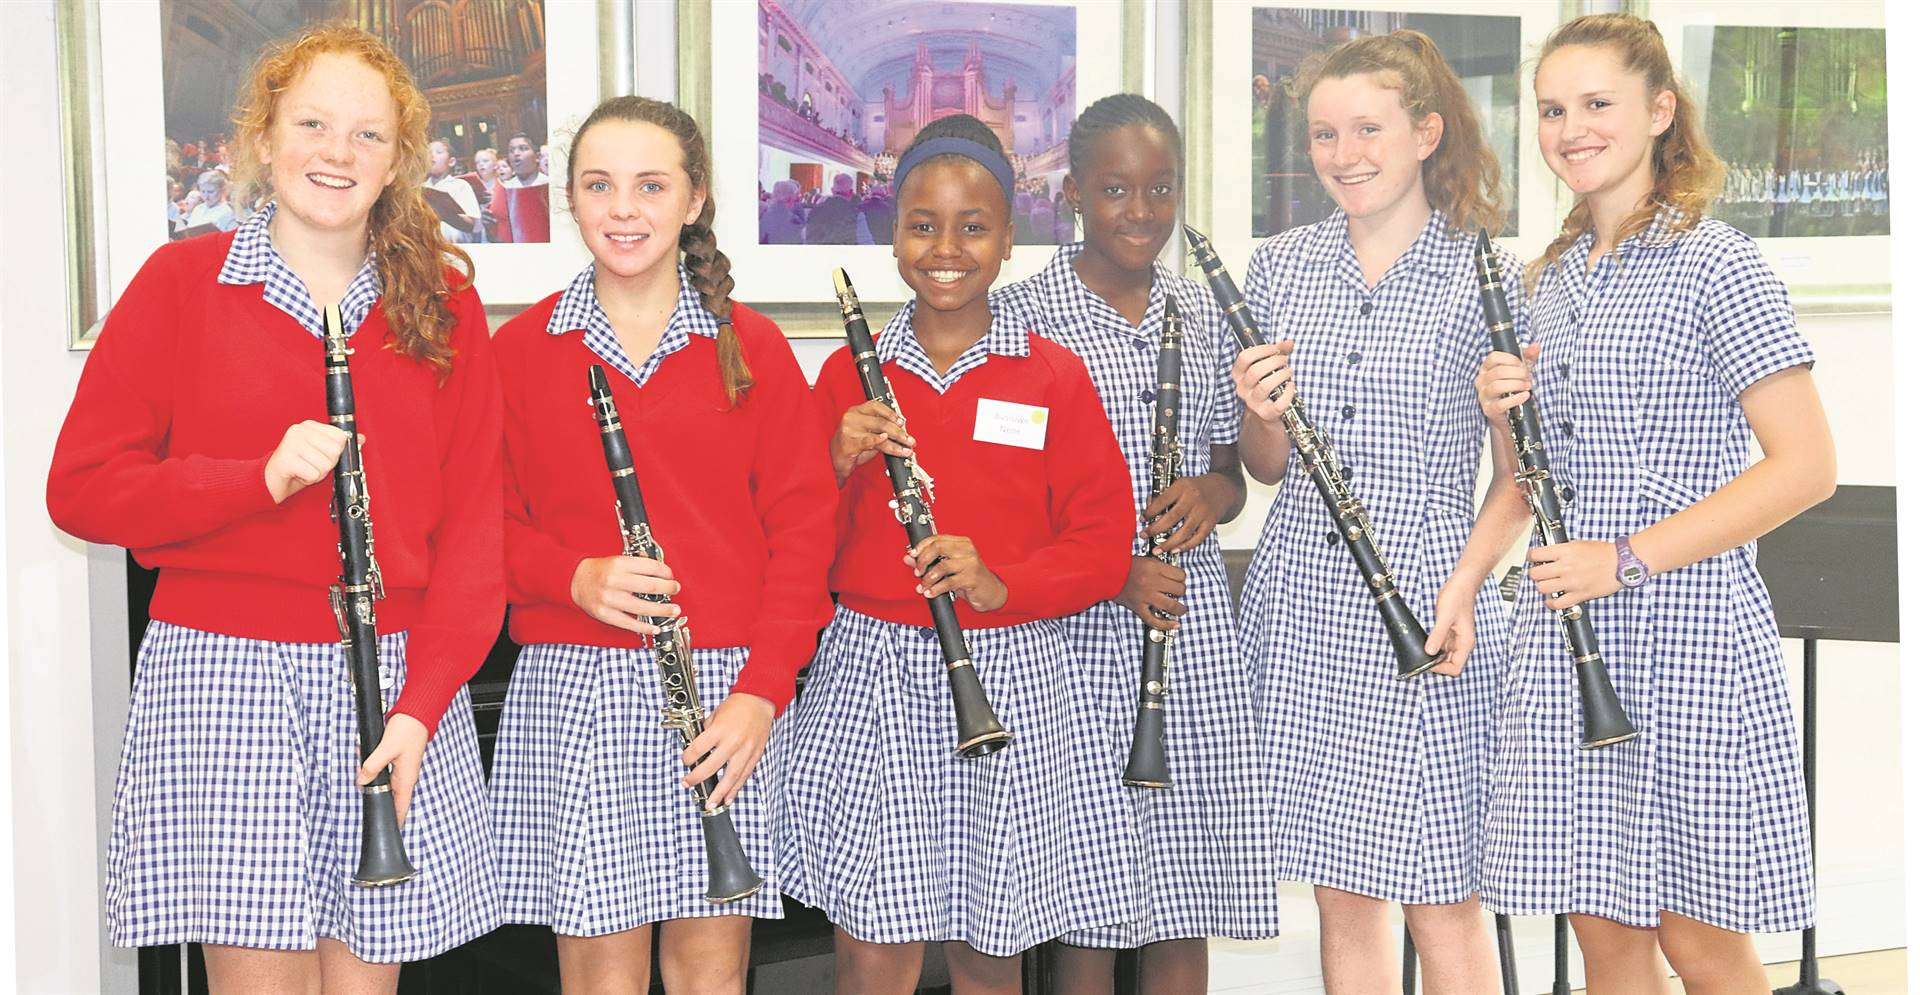 Epworth High School launched its Grade 8 Instrumental Programme in which all the Grade 8 pupils learn either piano, clarinet, or receive vocal training. At their first training lesson are (from left) clarinet lesson, Tori Little, Chloe Hatch, Busisiwe Nene, Jessica Monji Builu, Isobel Cobbold and Pippa Mitchell. PHOTO: SUPPLIED